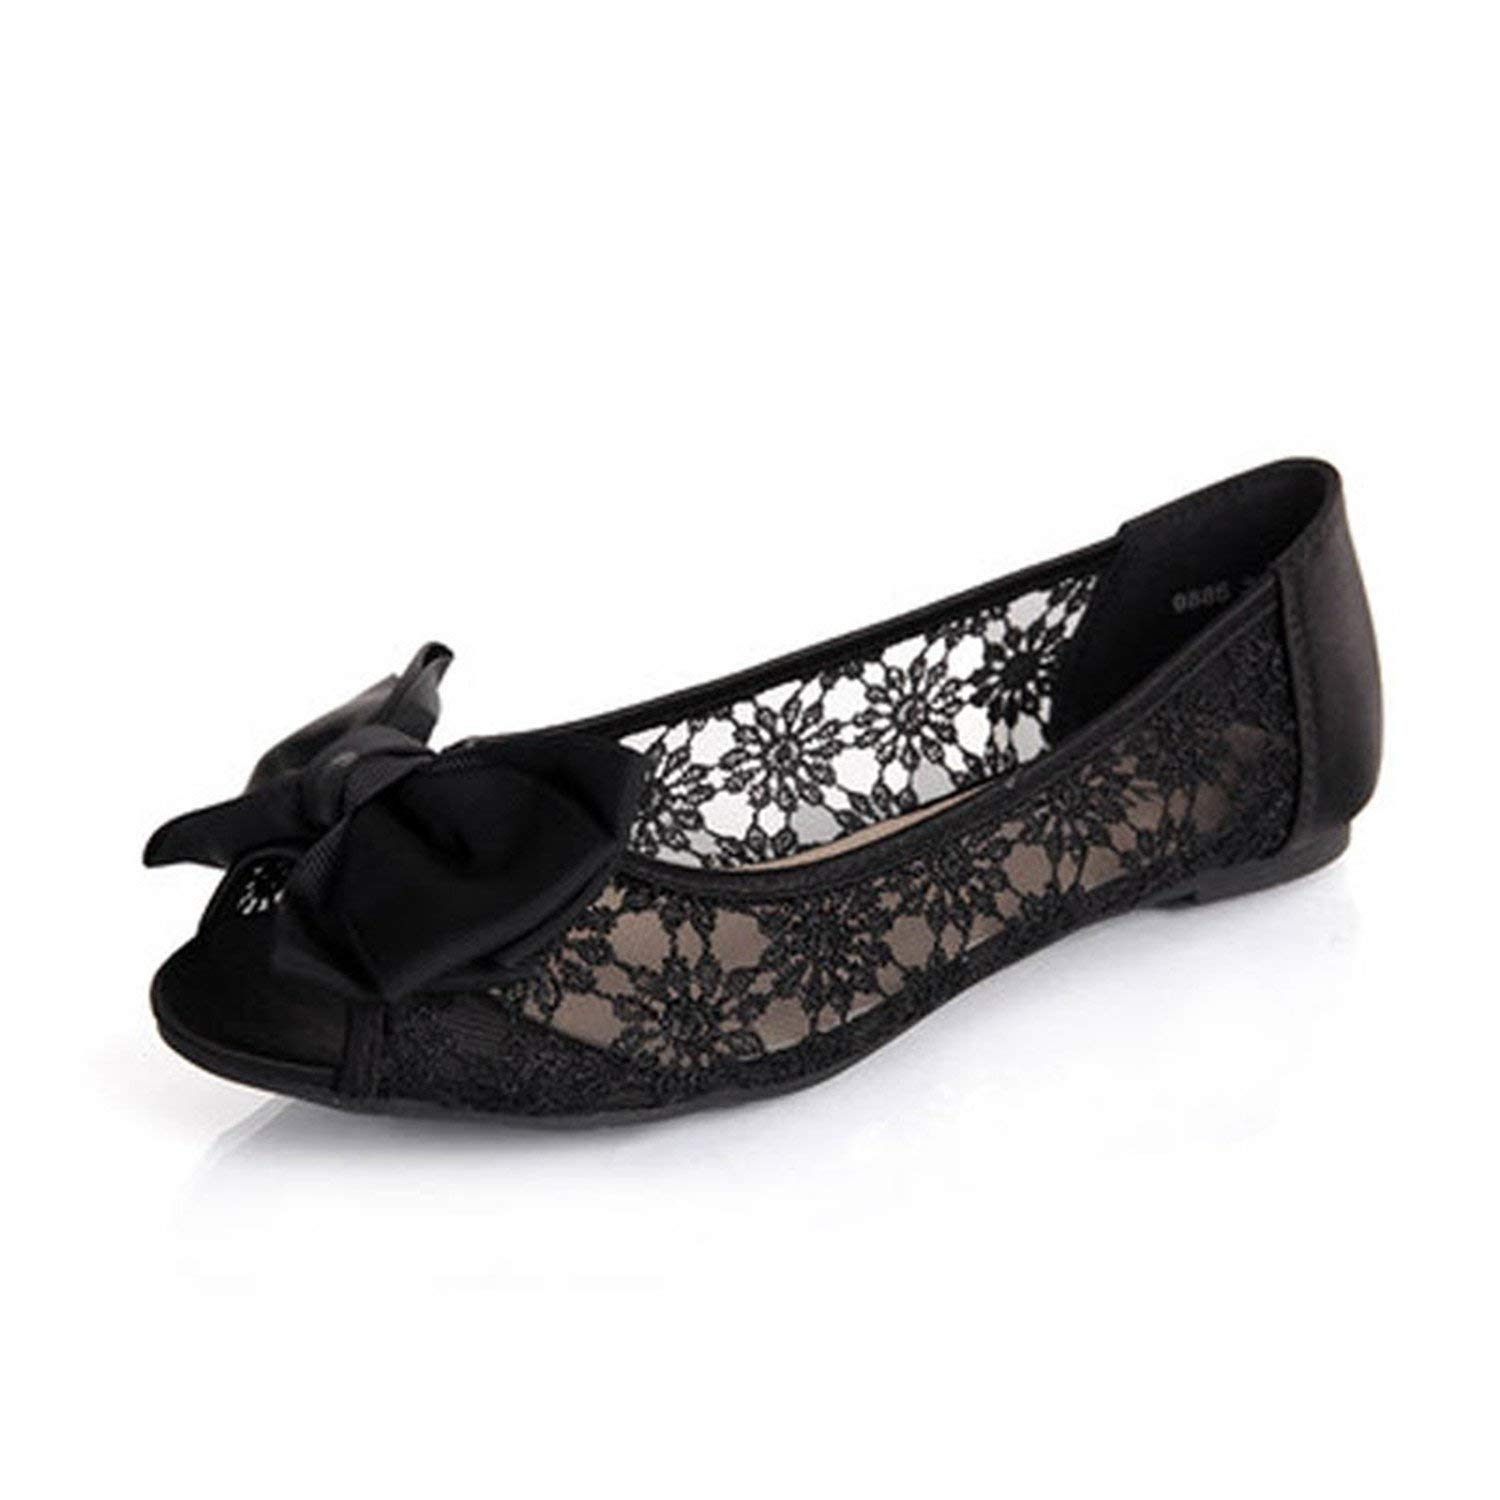 6f7adf0cb9a2b Get Quotations · Beverly Stewart Women Ballerinas Fashion Bow Pointed Toe  Slip-On Women Flats Ladies Casual Breathable